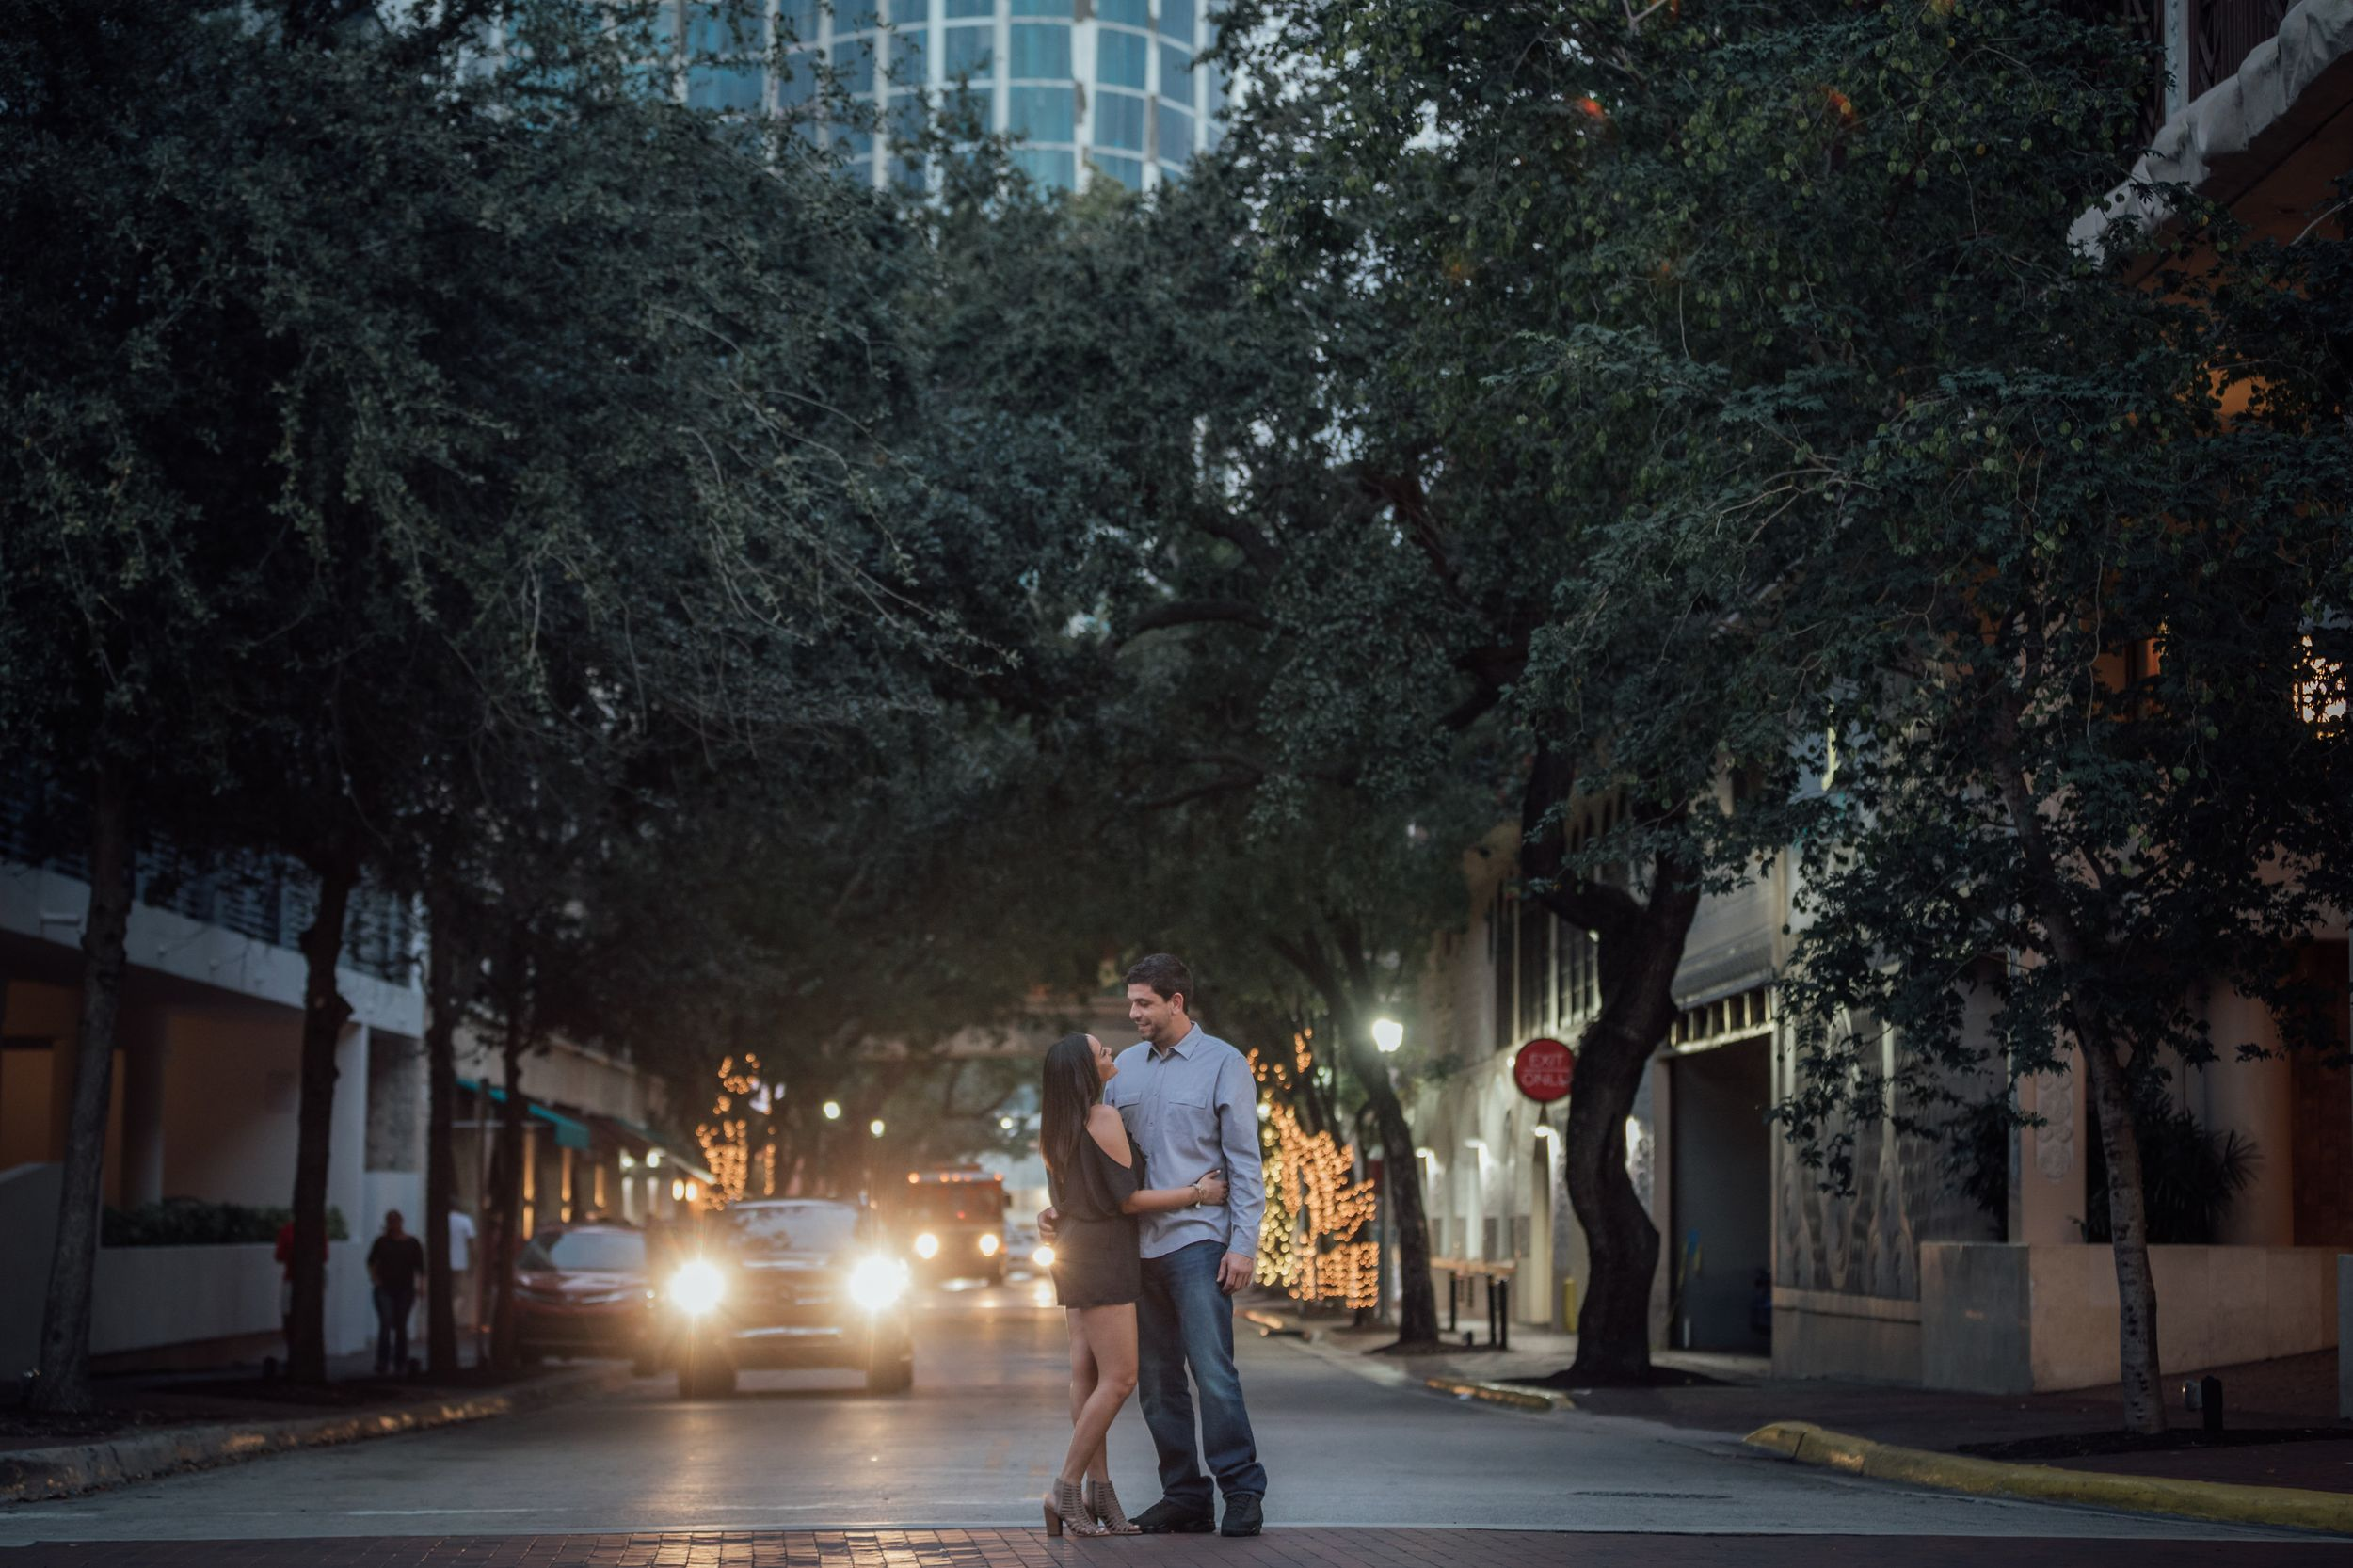 Couple embracing each other at dusk during an engagement session in Coconut grove Florida